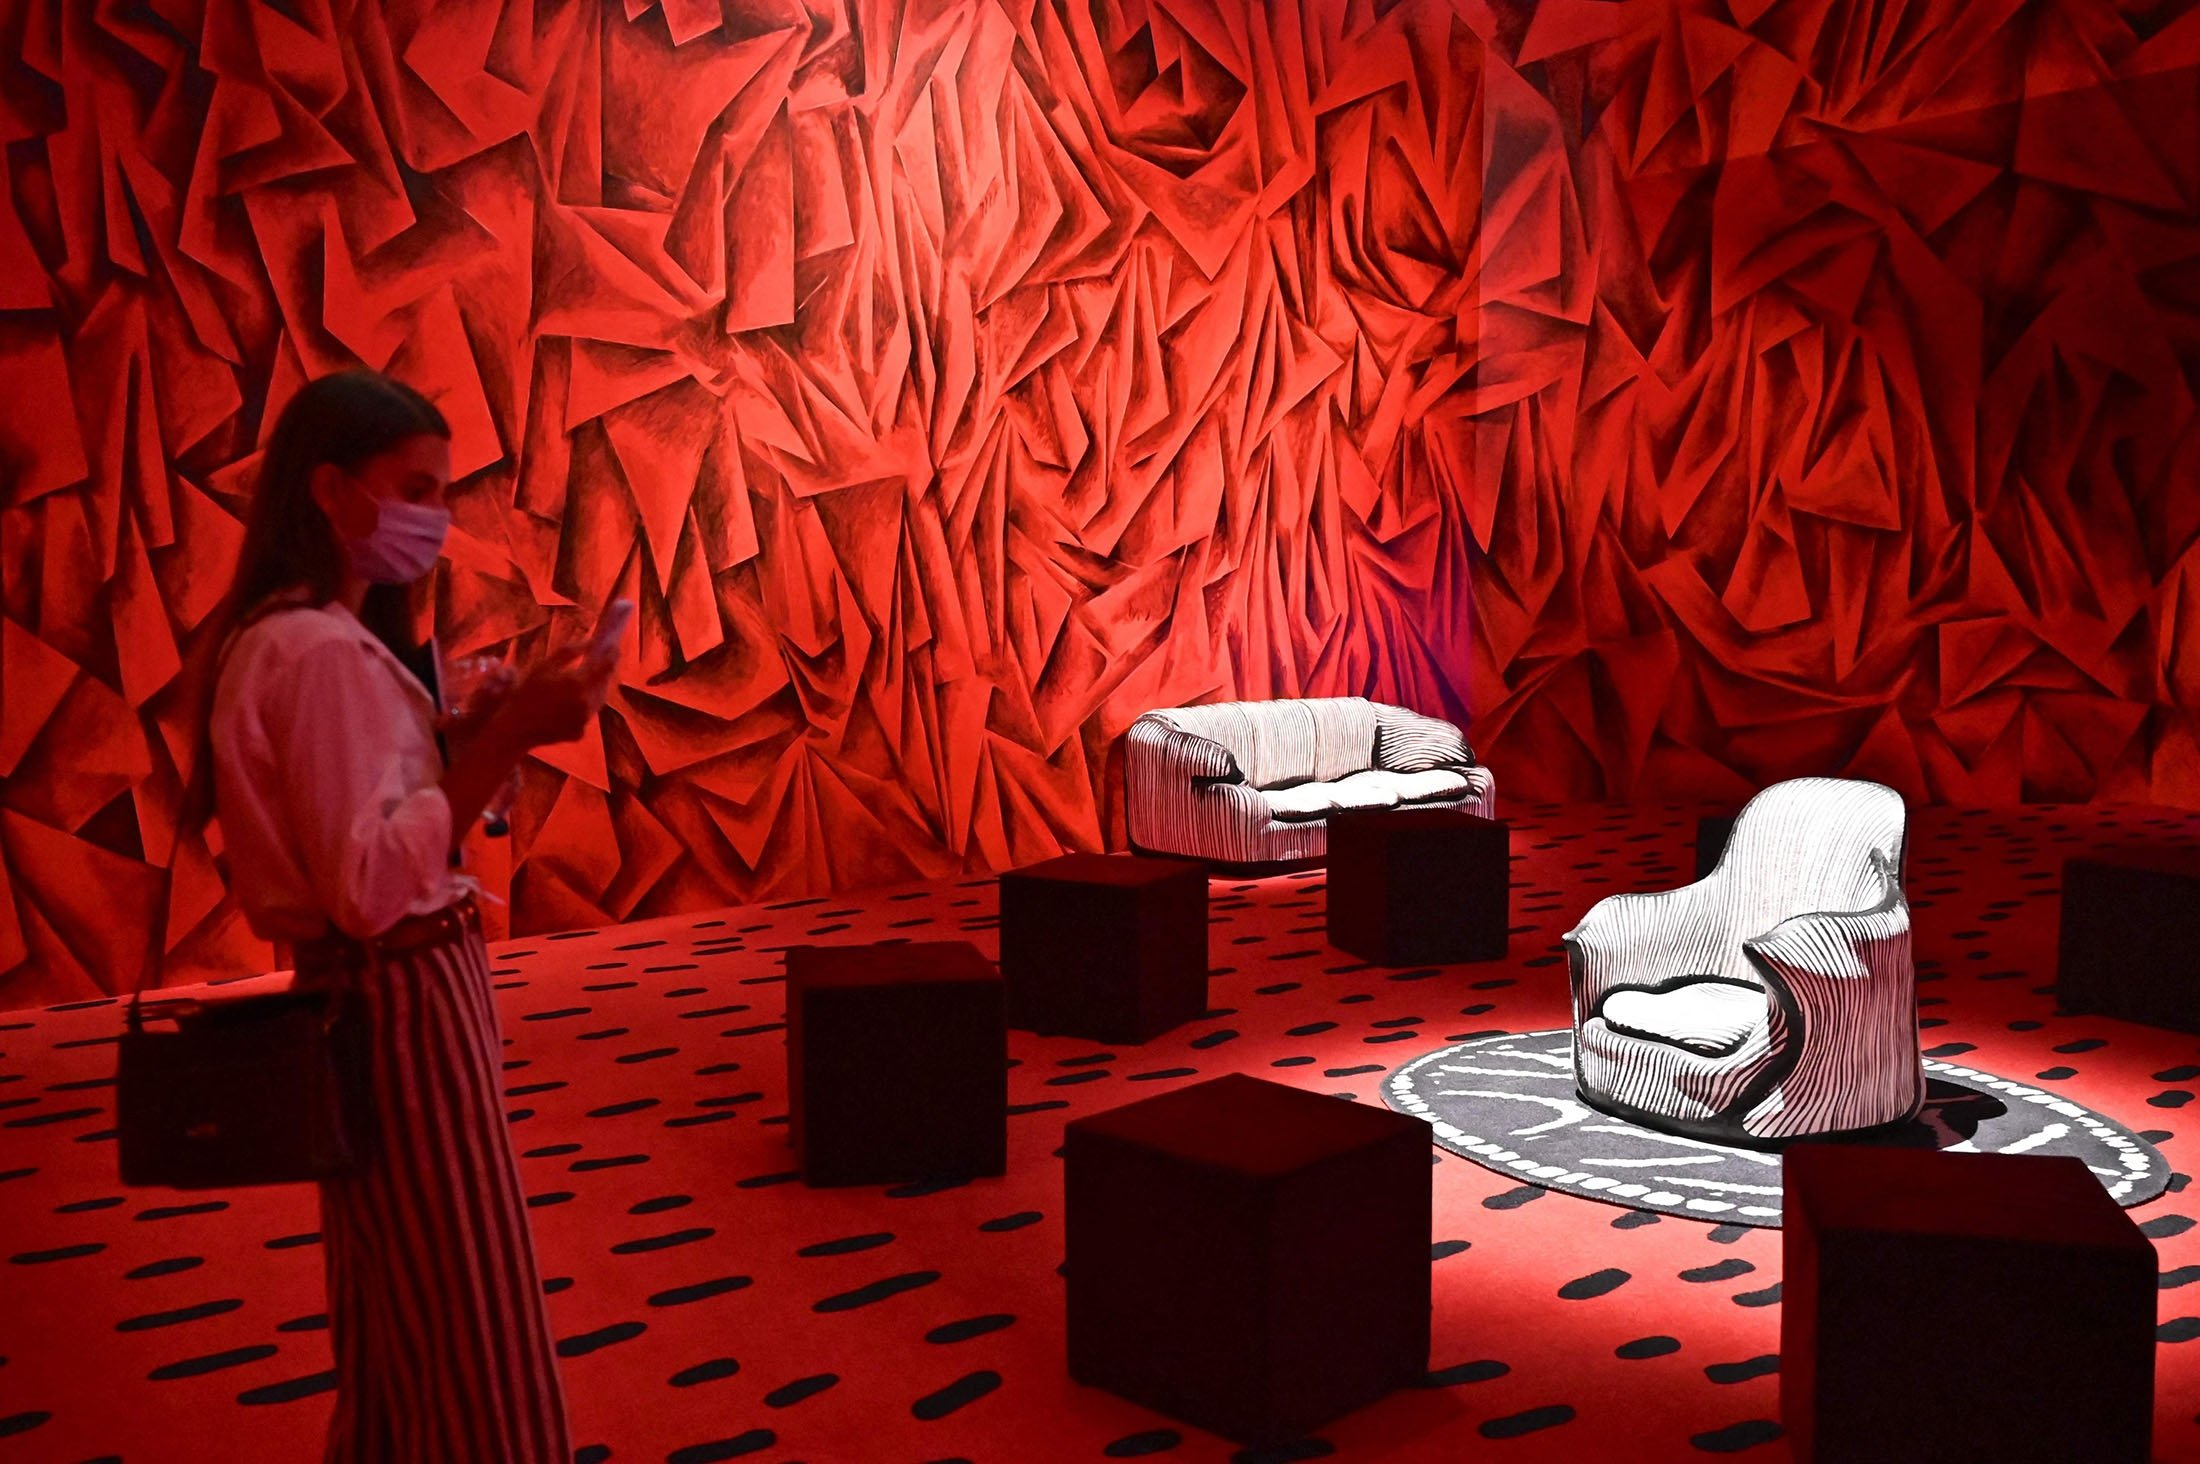 A visitor looks at Davidis Living Room Revisited by artists Guillermo Kuitca and David Lynch at the Les Citoyens by Cartier Foundation during the Fuorisalone 2021 in Triennale Museum, in Milan, Italy, Sept. 4, 2021. (AFP Photo)